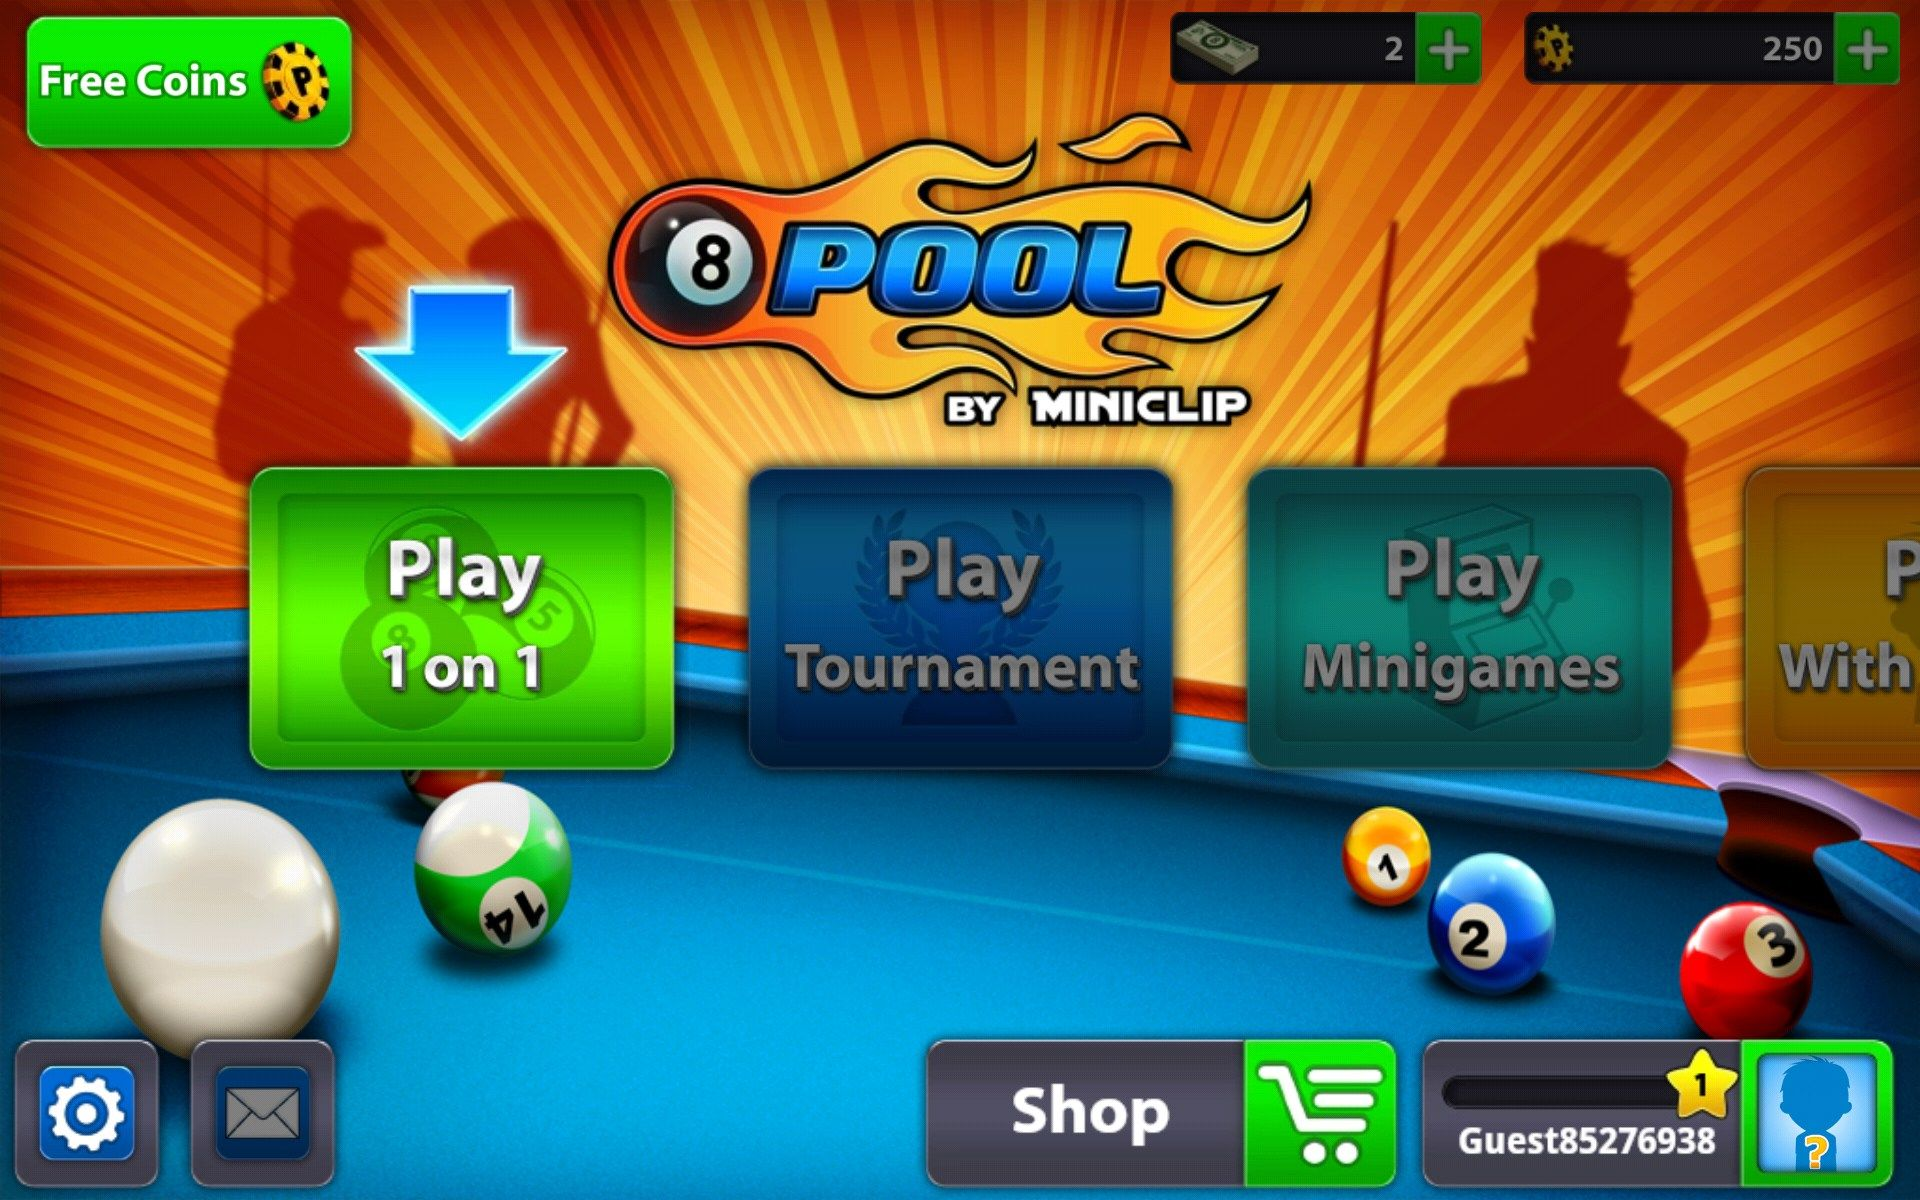 8 Ball pool apk Mod+ hack No root 3 0 1 for Android: 8 Ball